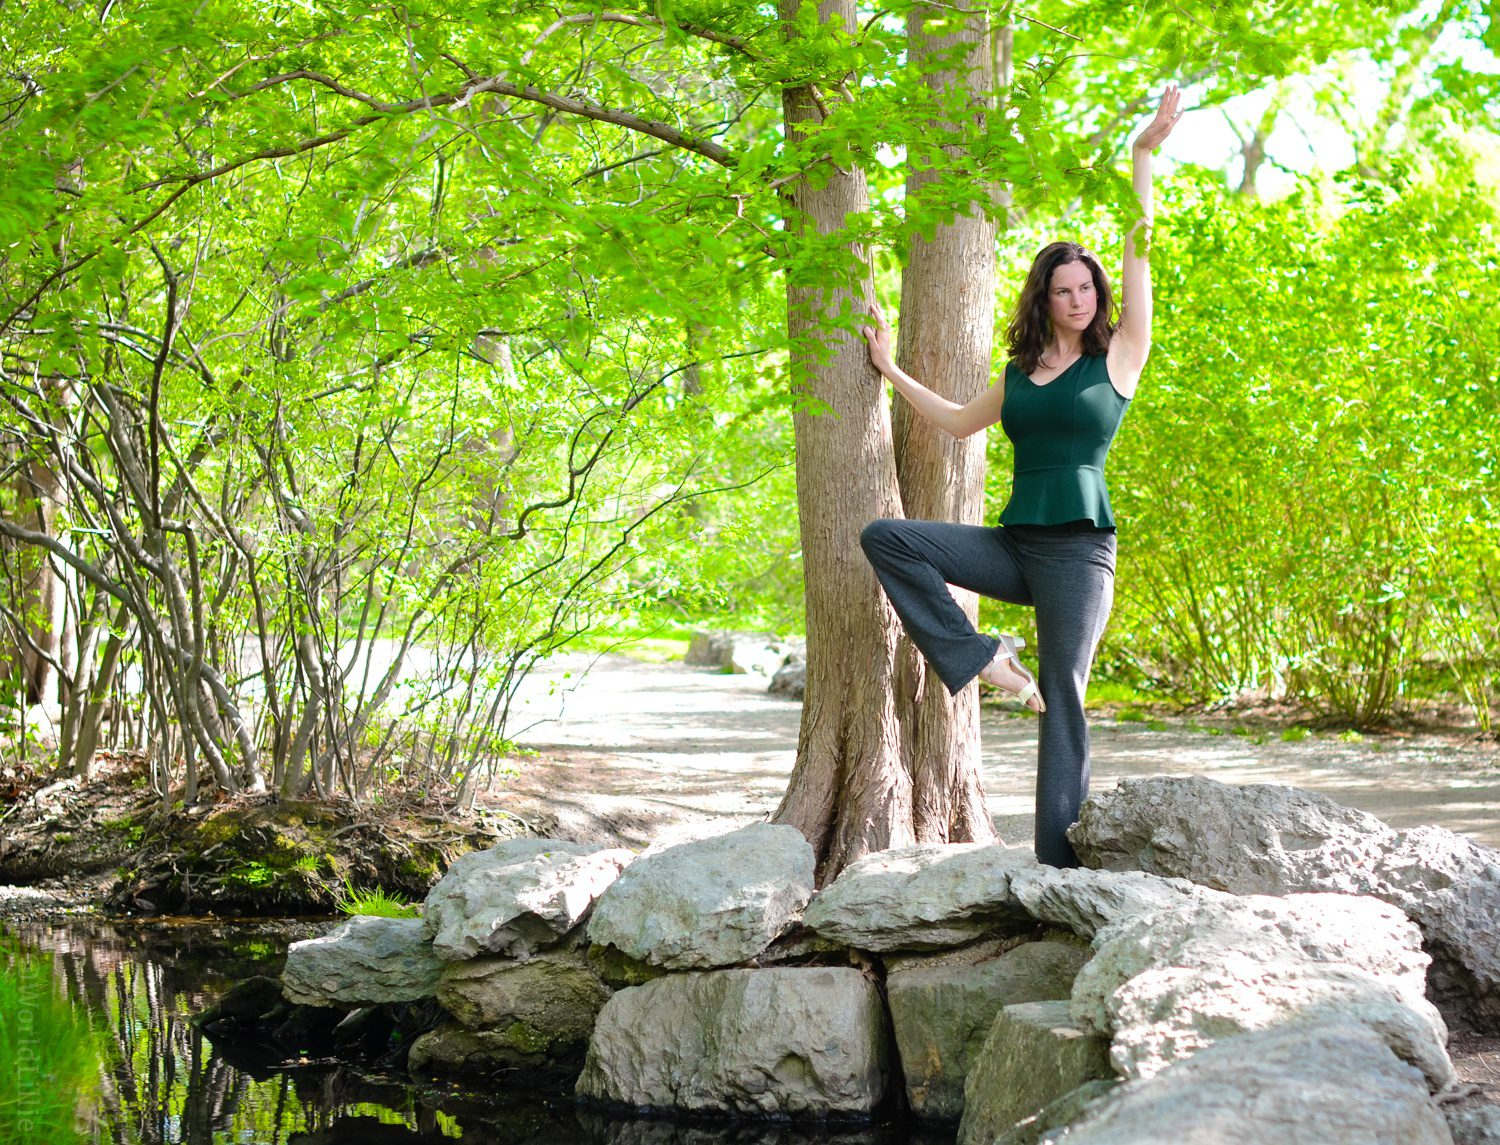 These dress pants are also yoga pants! Perfect for randomly poses by the side of a river.